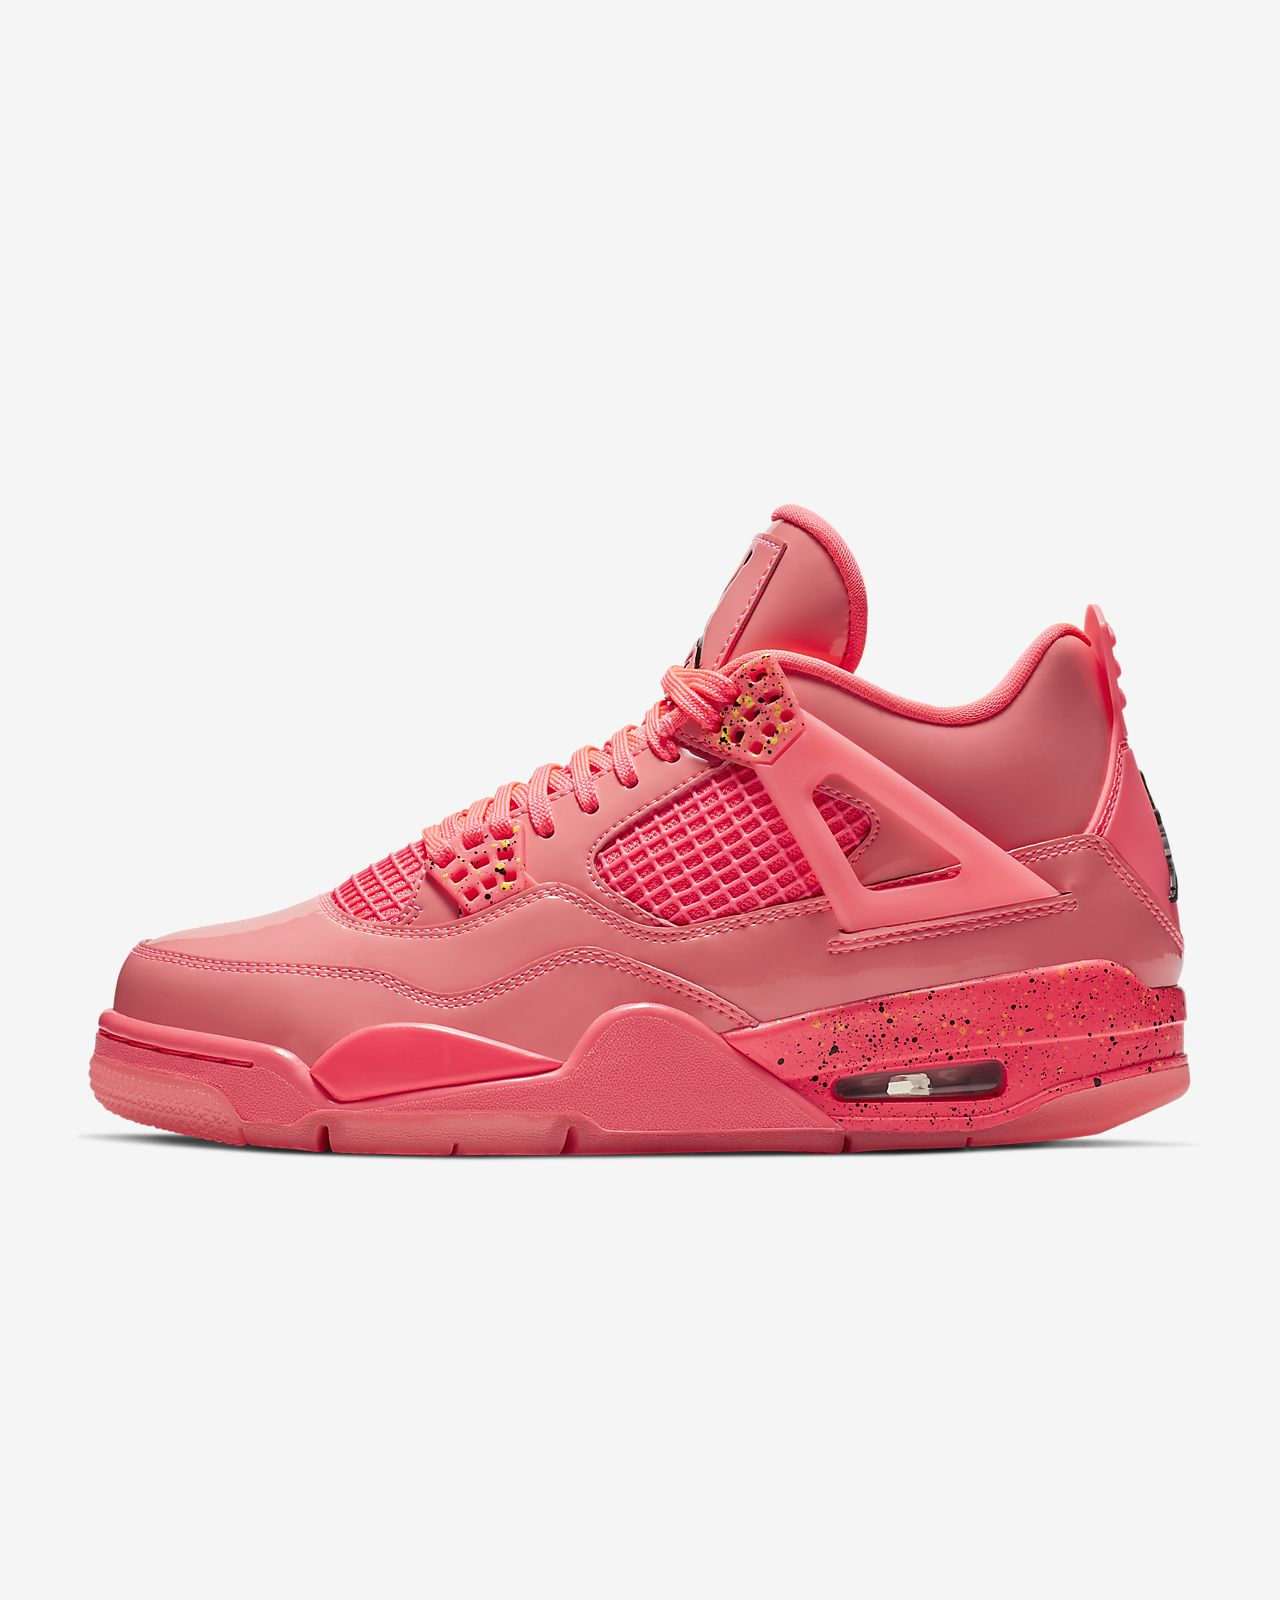 pretty nice a9e49 472fd Air Jordan 4 Retro NRG Women's Shoe. Nike.com